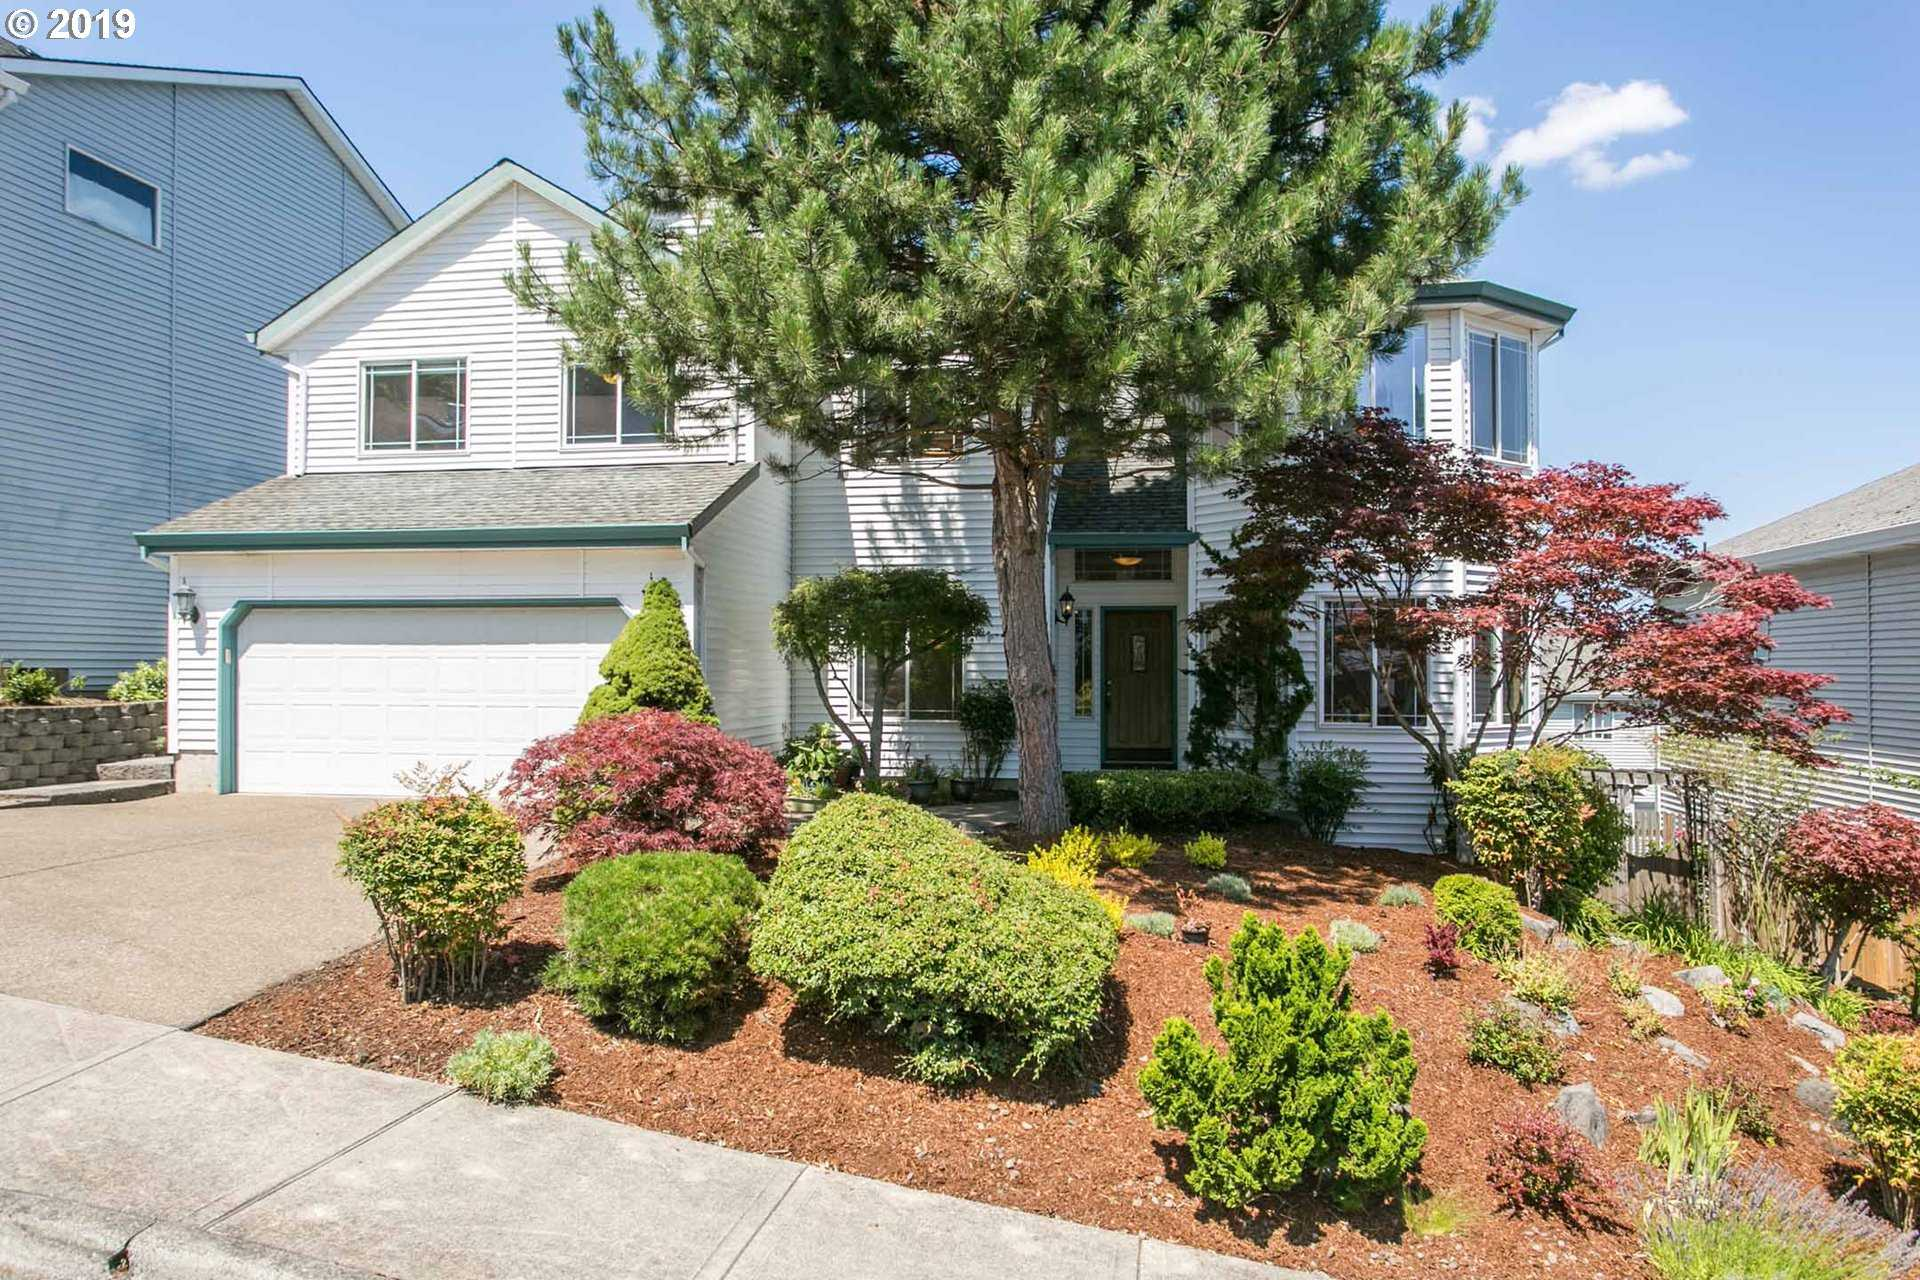 $499,000 - 5Br/3Ba -  for Sale in Satterberg Heights, Beaverton